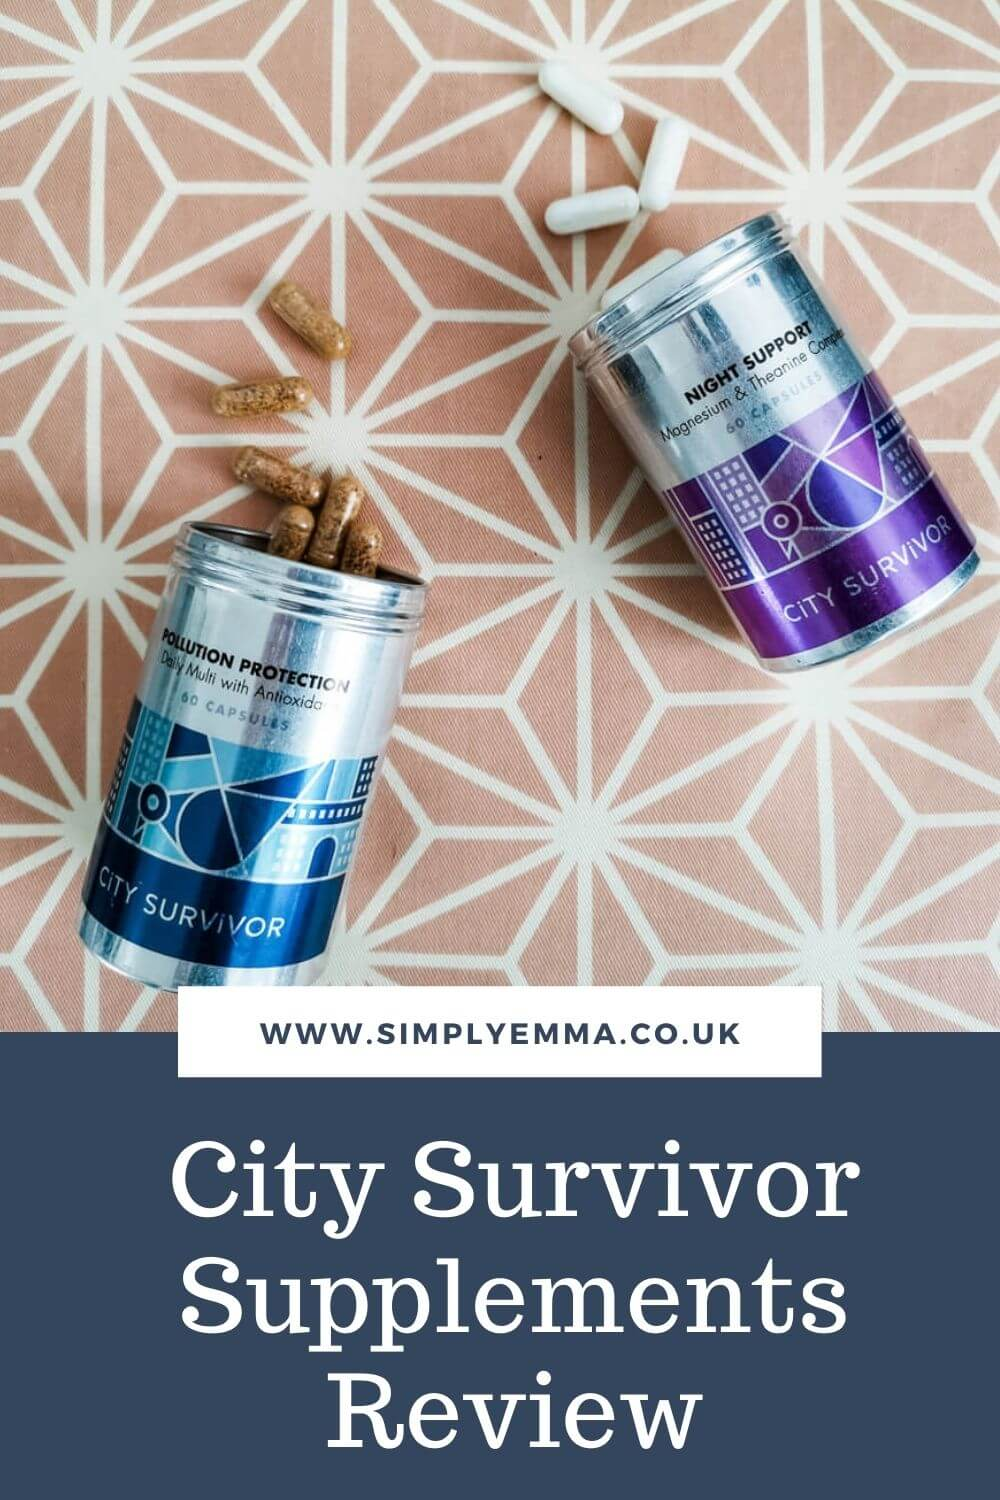 """Pinterest image showing the City Survivor supplements in metal tins laid on their sides with the lid off and capsules scattered. With text at the bottom of the image """"www.simplyemma.co.uk. City Survivor Supplements Review"""""""